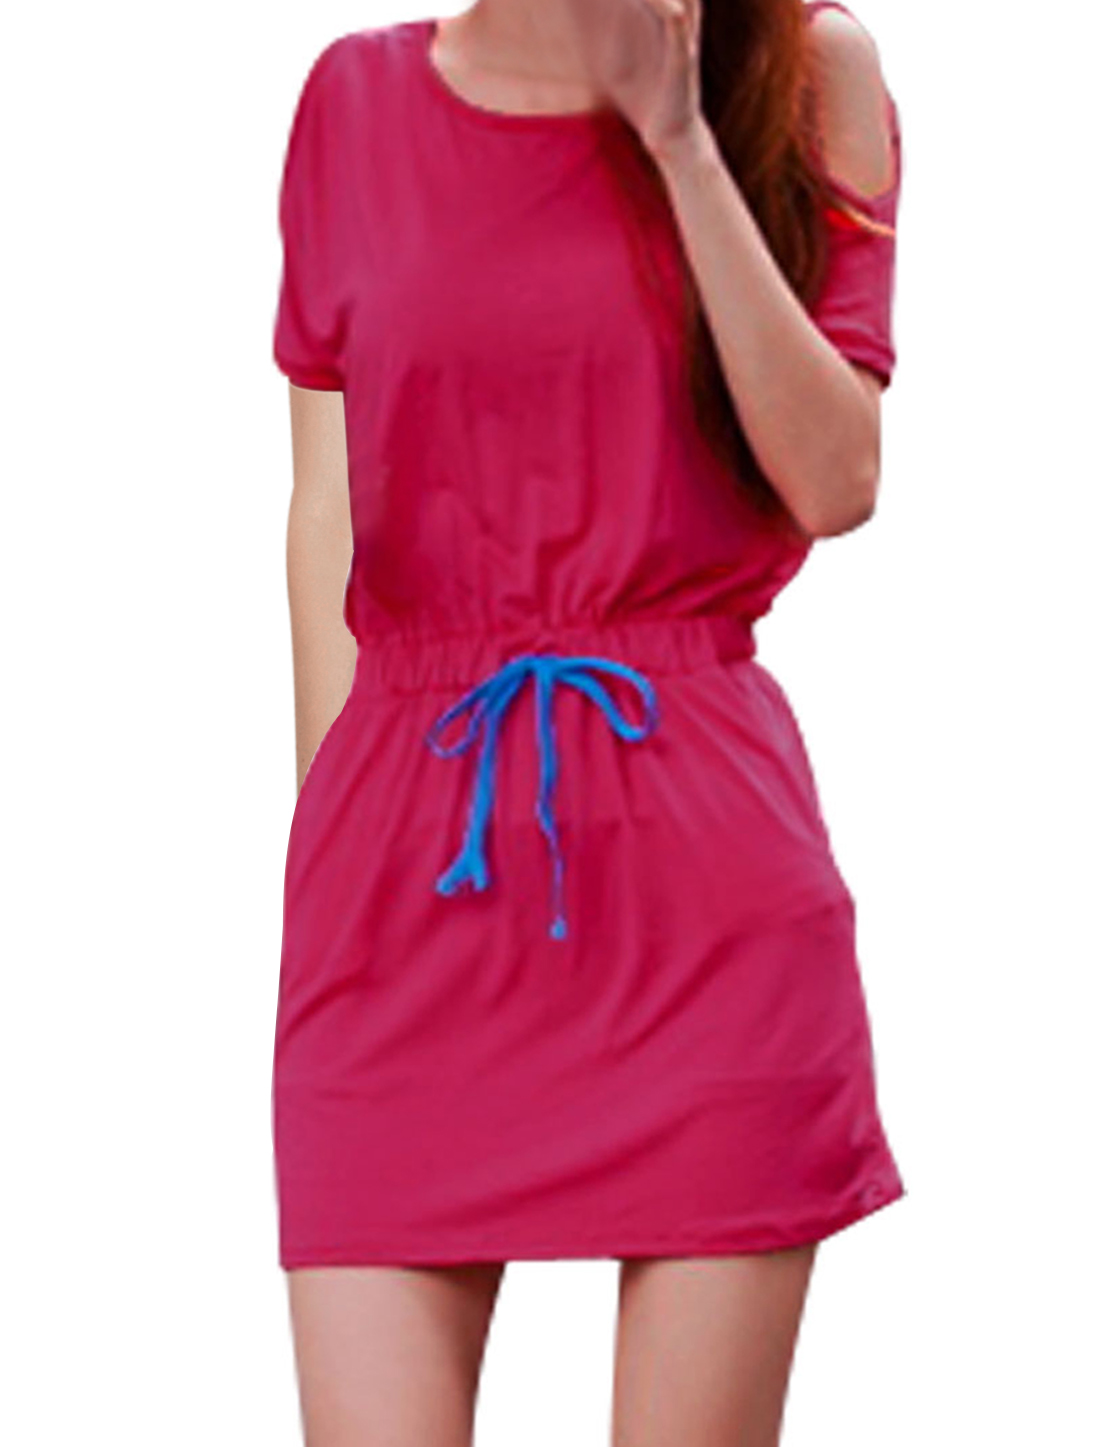 Lady Round Neck Dolman Sleeve Drawstring Waist Fashional Fuchsia Mini Dress S